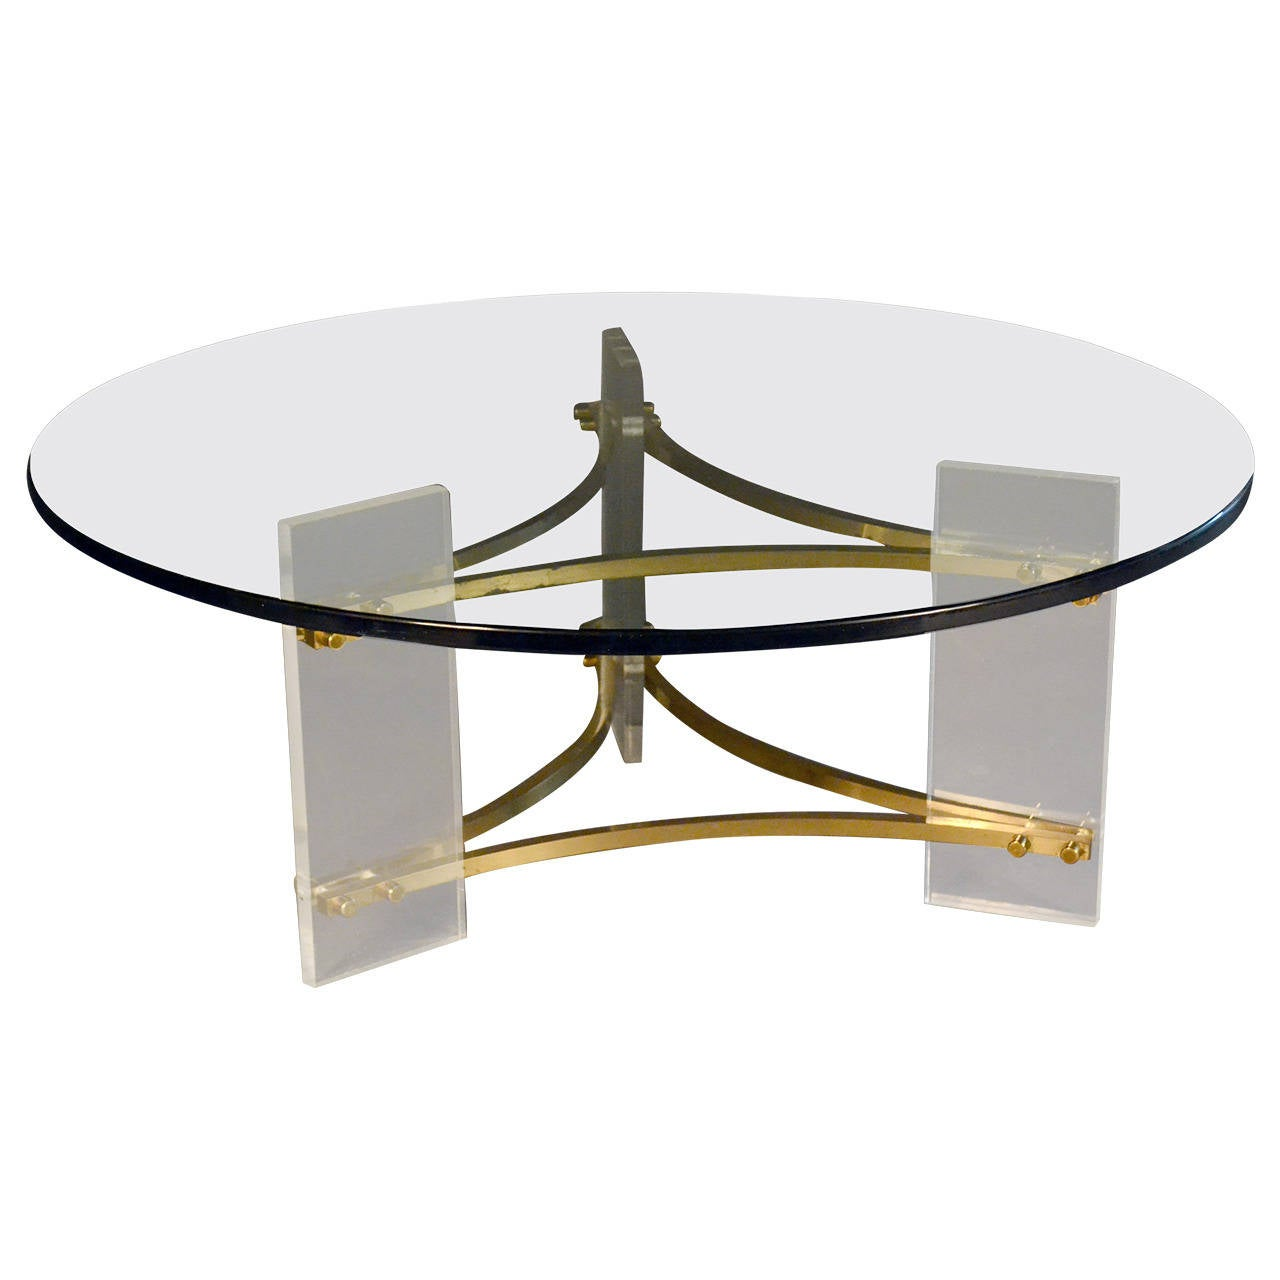 Charles hollis jones lucite and brass coffee table with for Lucite and brass coffee table